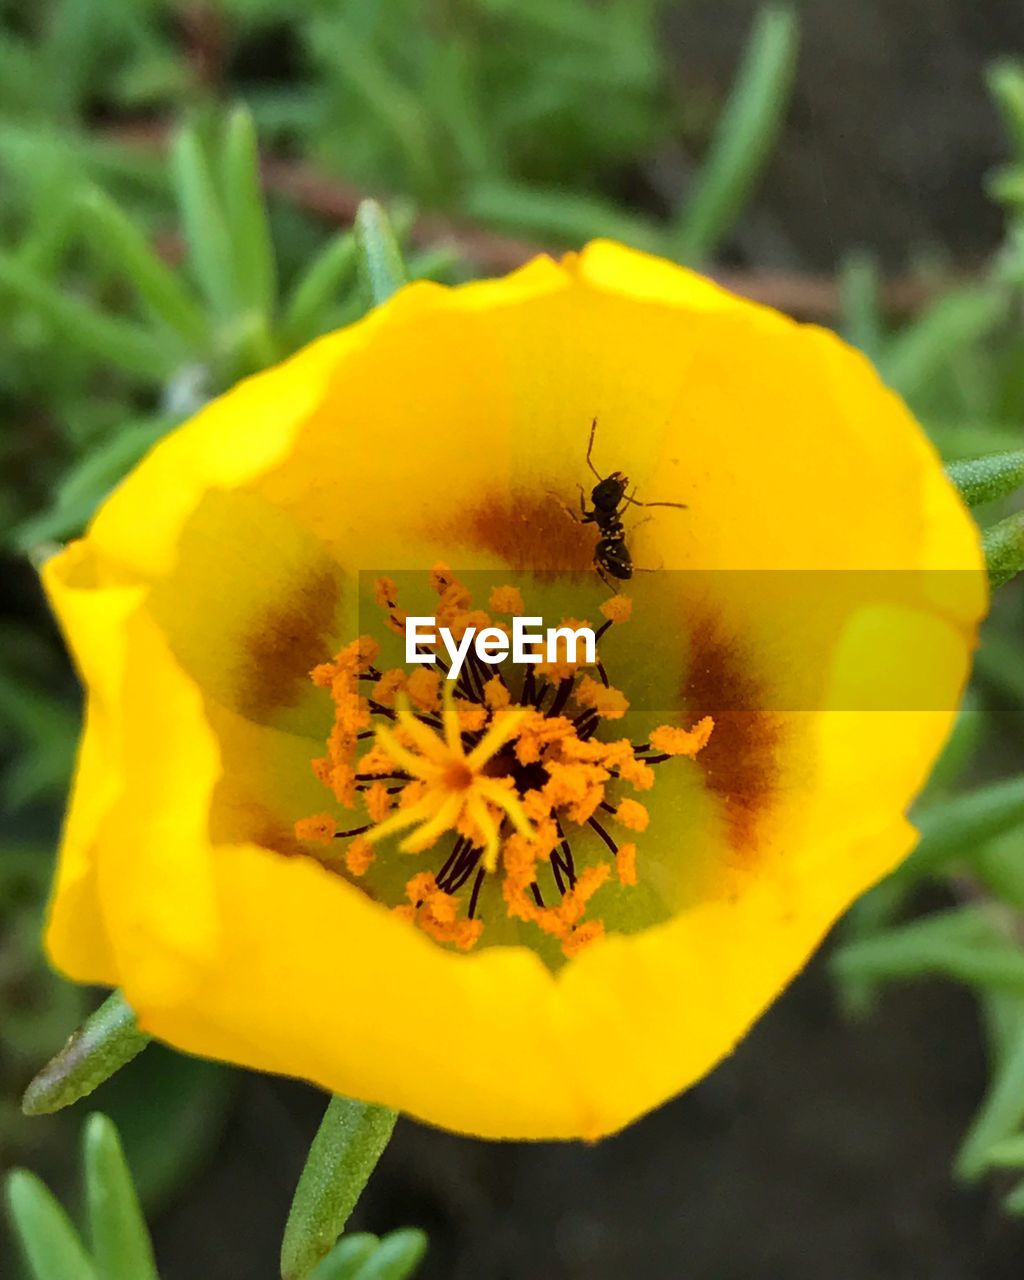 flower, yellow, insect, animal themes, fragility, petal, bee, nature, animals in the wild, freshness, one animal, growth, beauty in nature, outdoors, flower head, day, honey bee, close-up, pollen, no people, blossom, plant, selective focus, springtime, pollination, stamen, buzzing